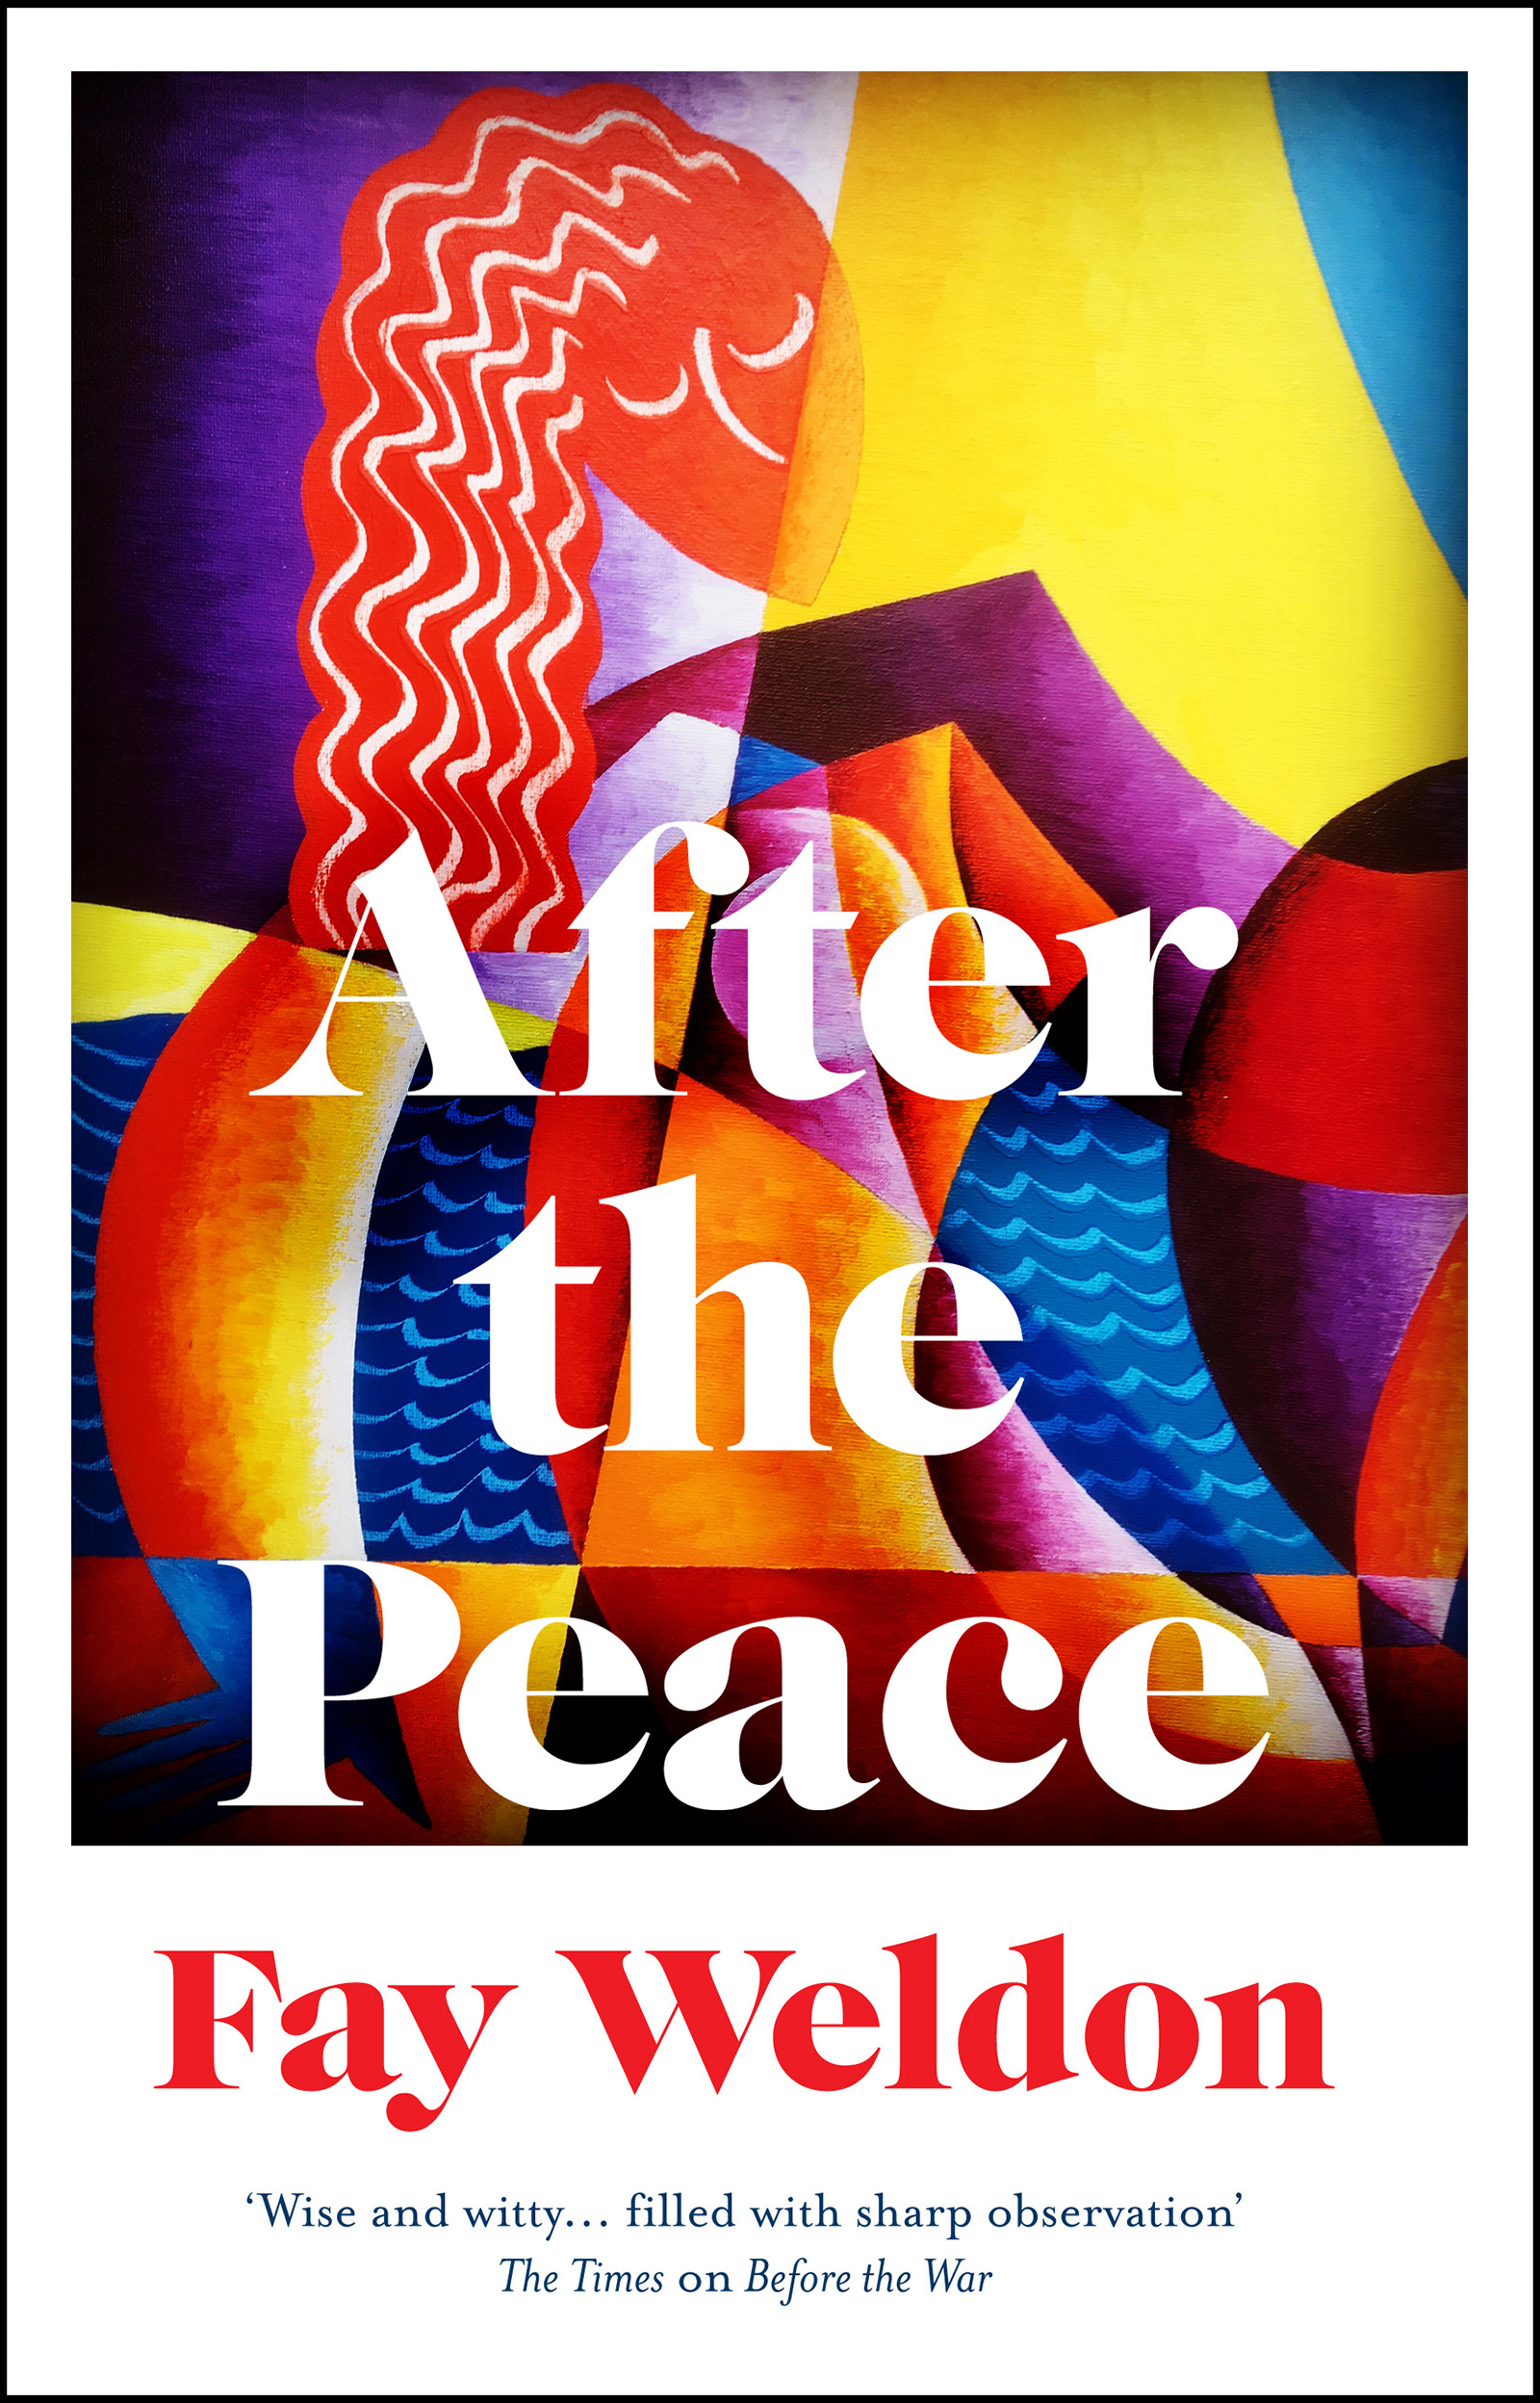 Weldon_AFTER THE PEACE cover.jpg